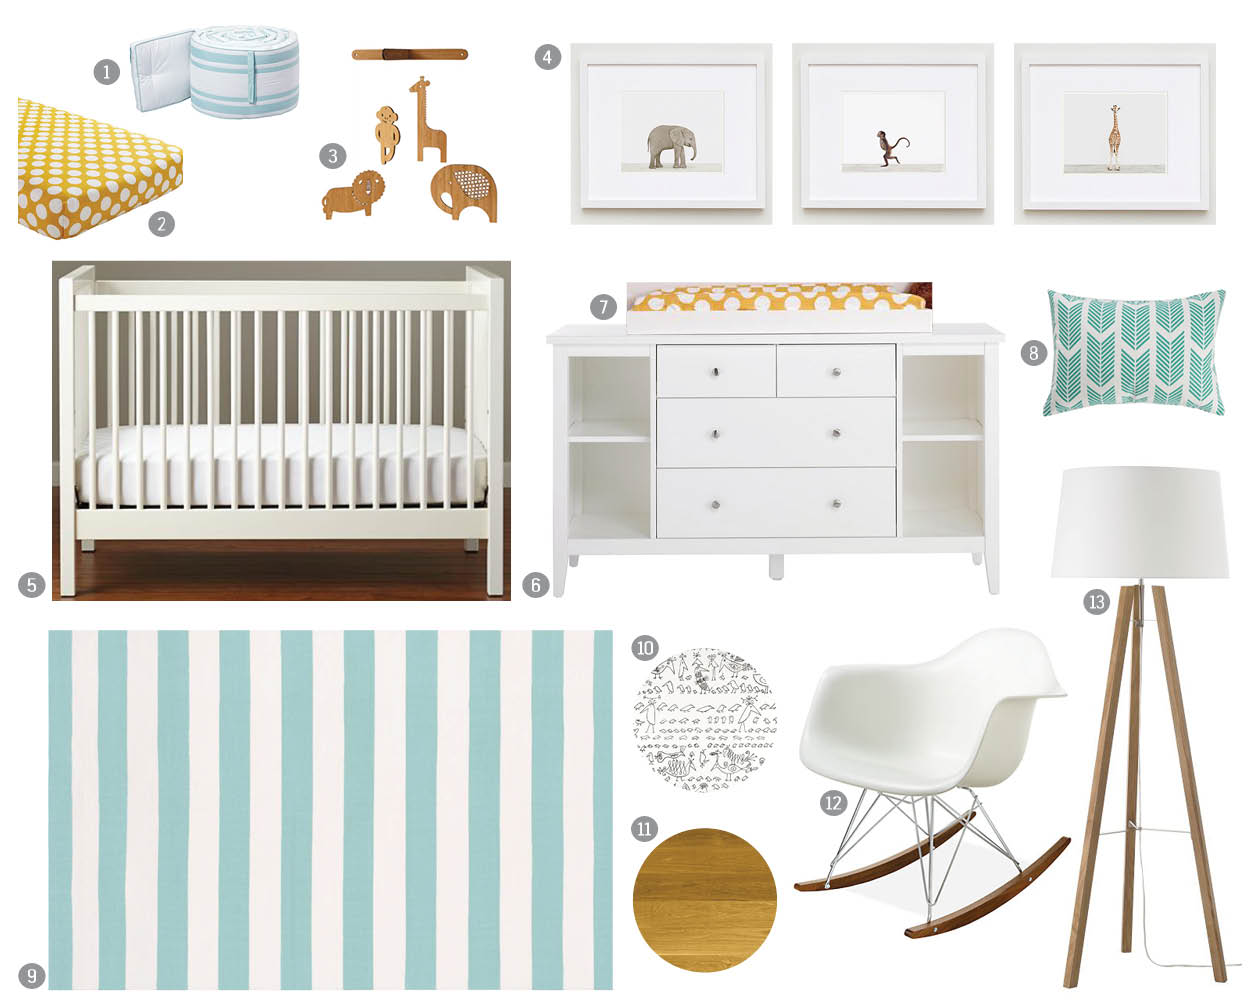 Home decor nursery room design life style 365 for Home decor 365